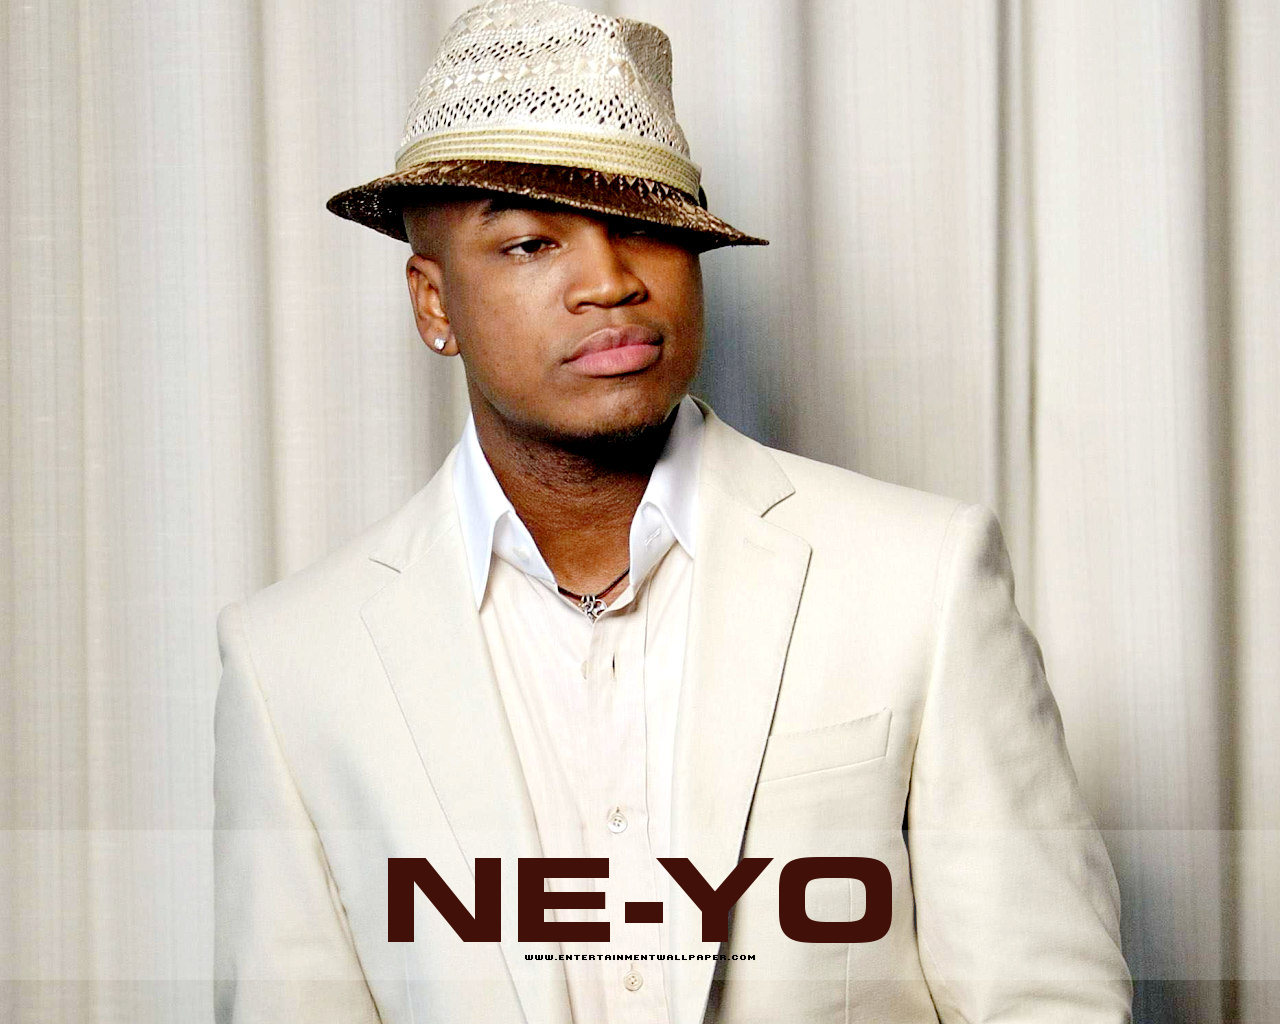 Ne-yo to honor Louis Gossett Jr.